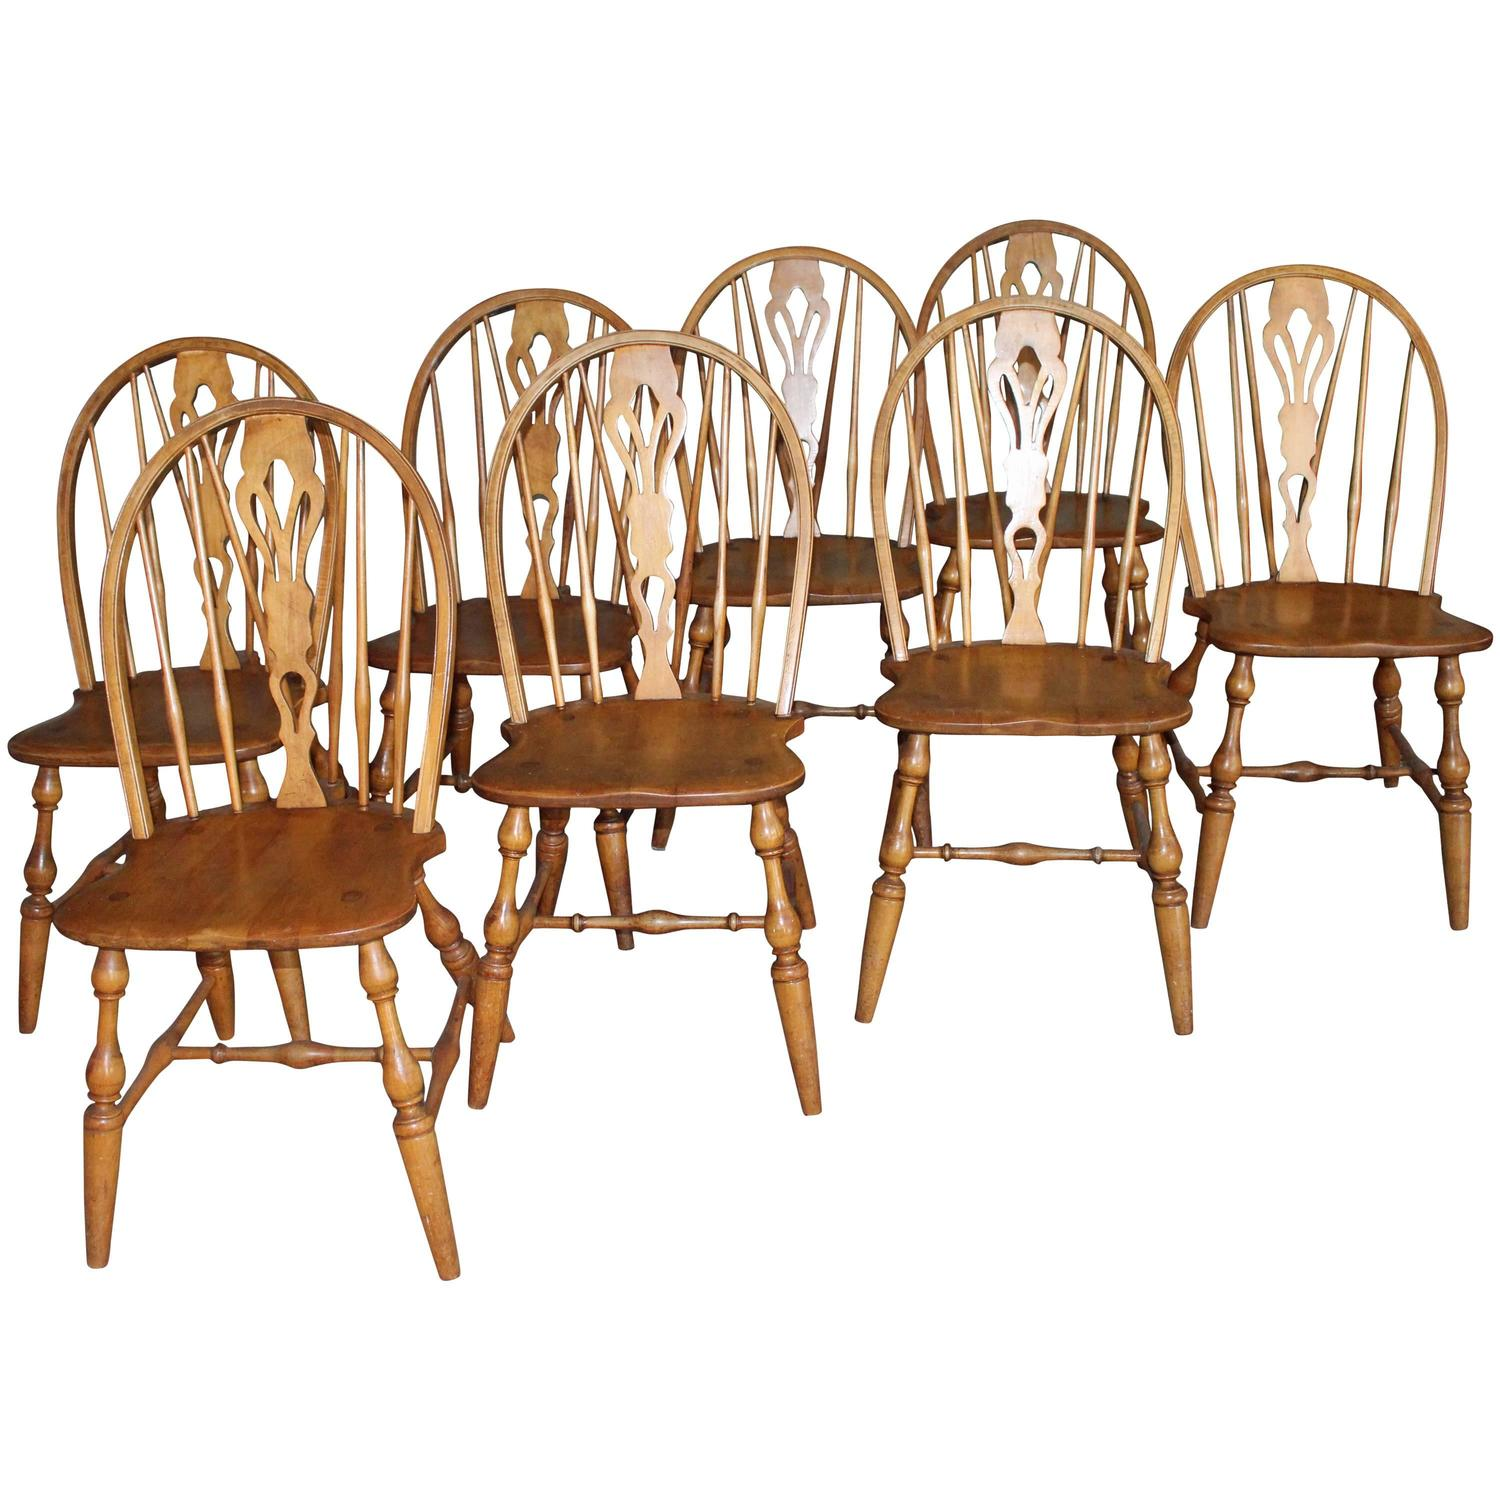 english windsor bow-brace back dining chairs with decorative splat